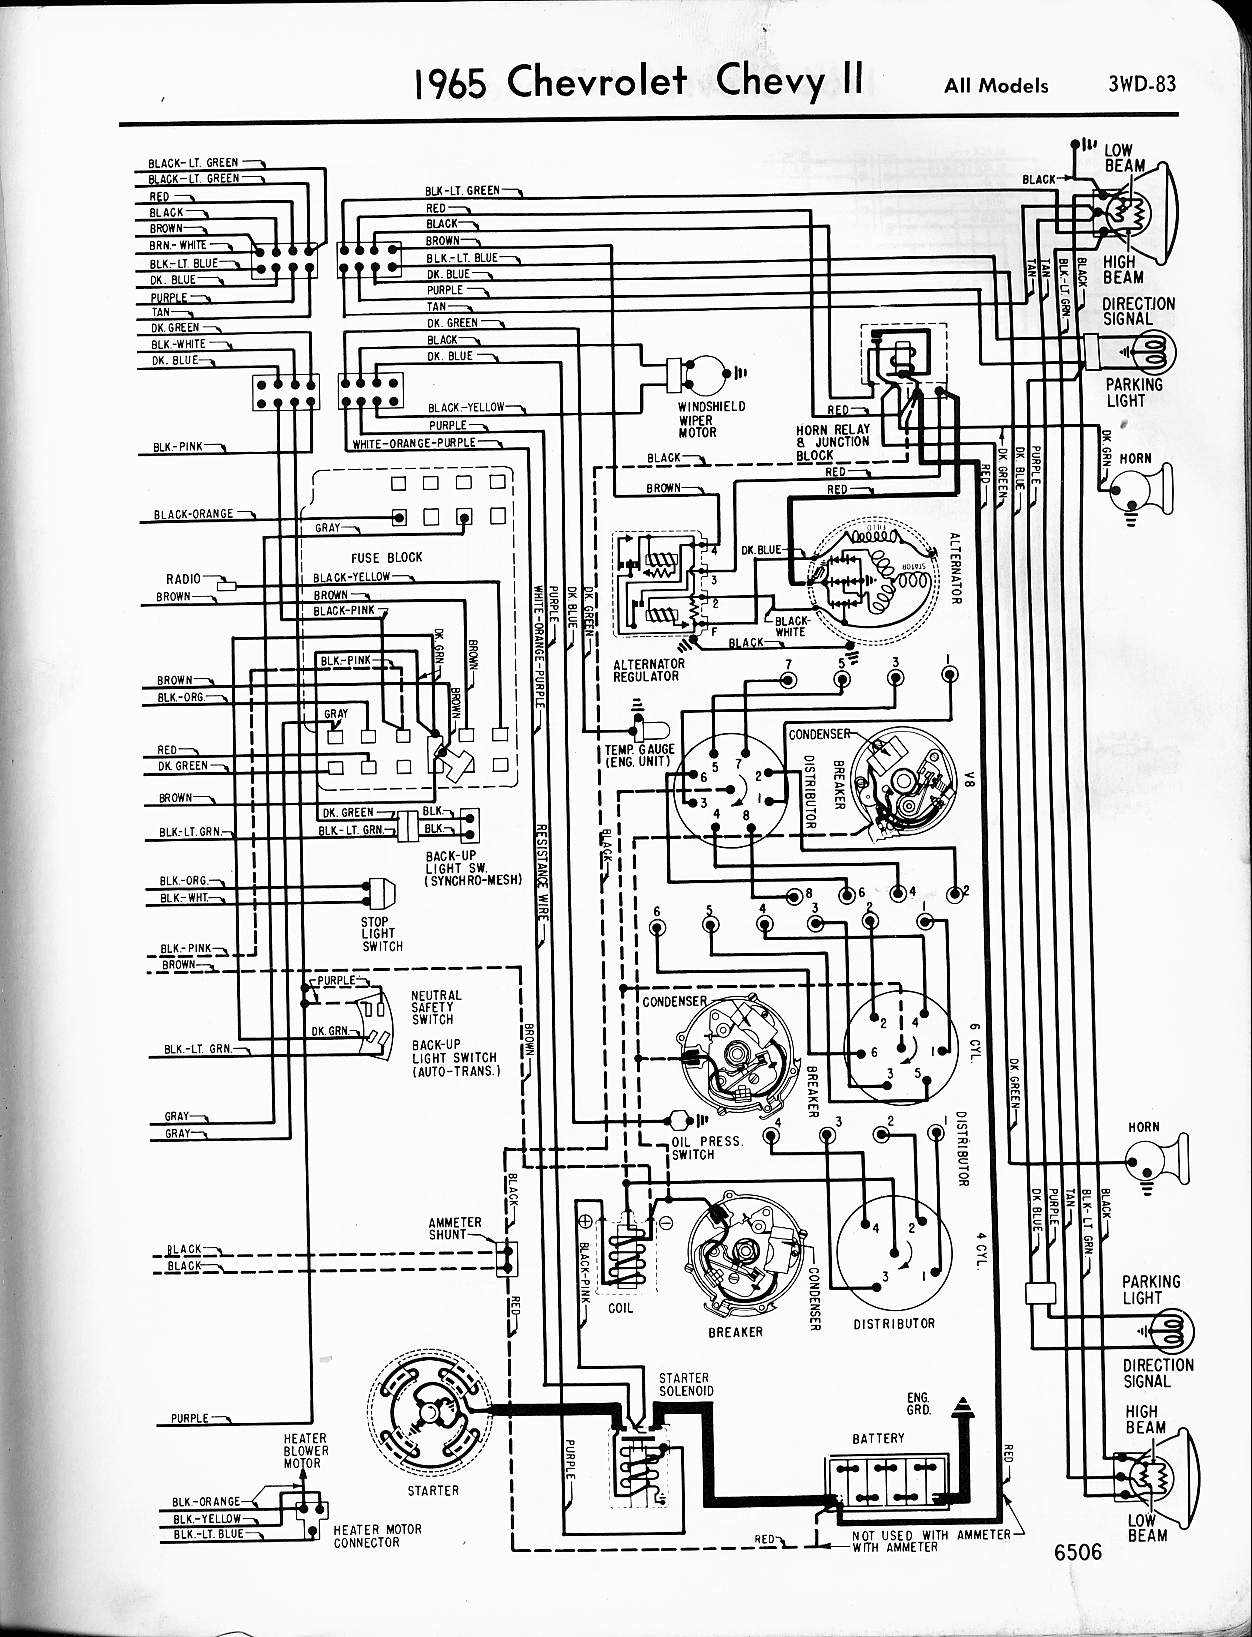 MWireChev65_3WD 083 57 65 chevy wiring diagrams 63 falcon wiring diagram at bayanpartner.co